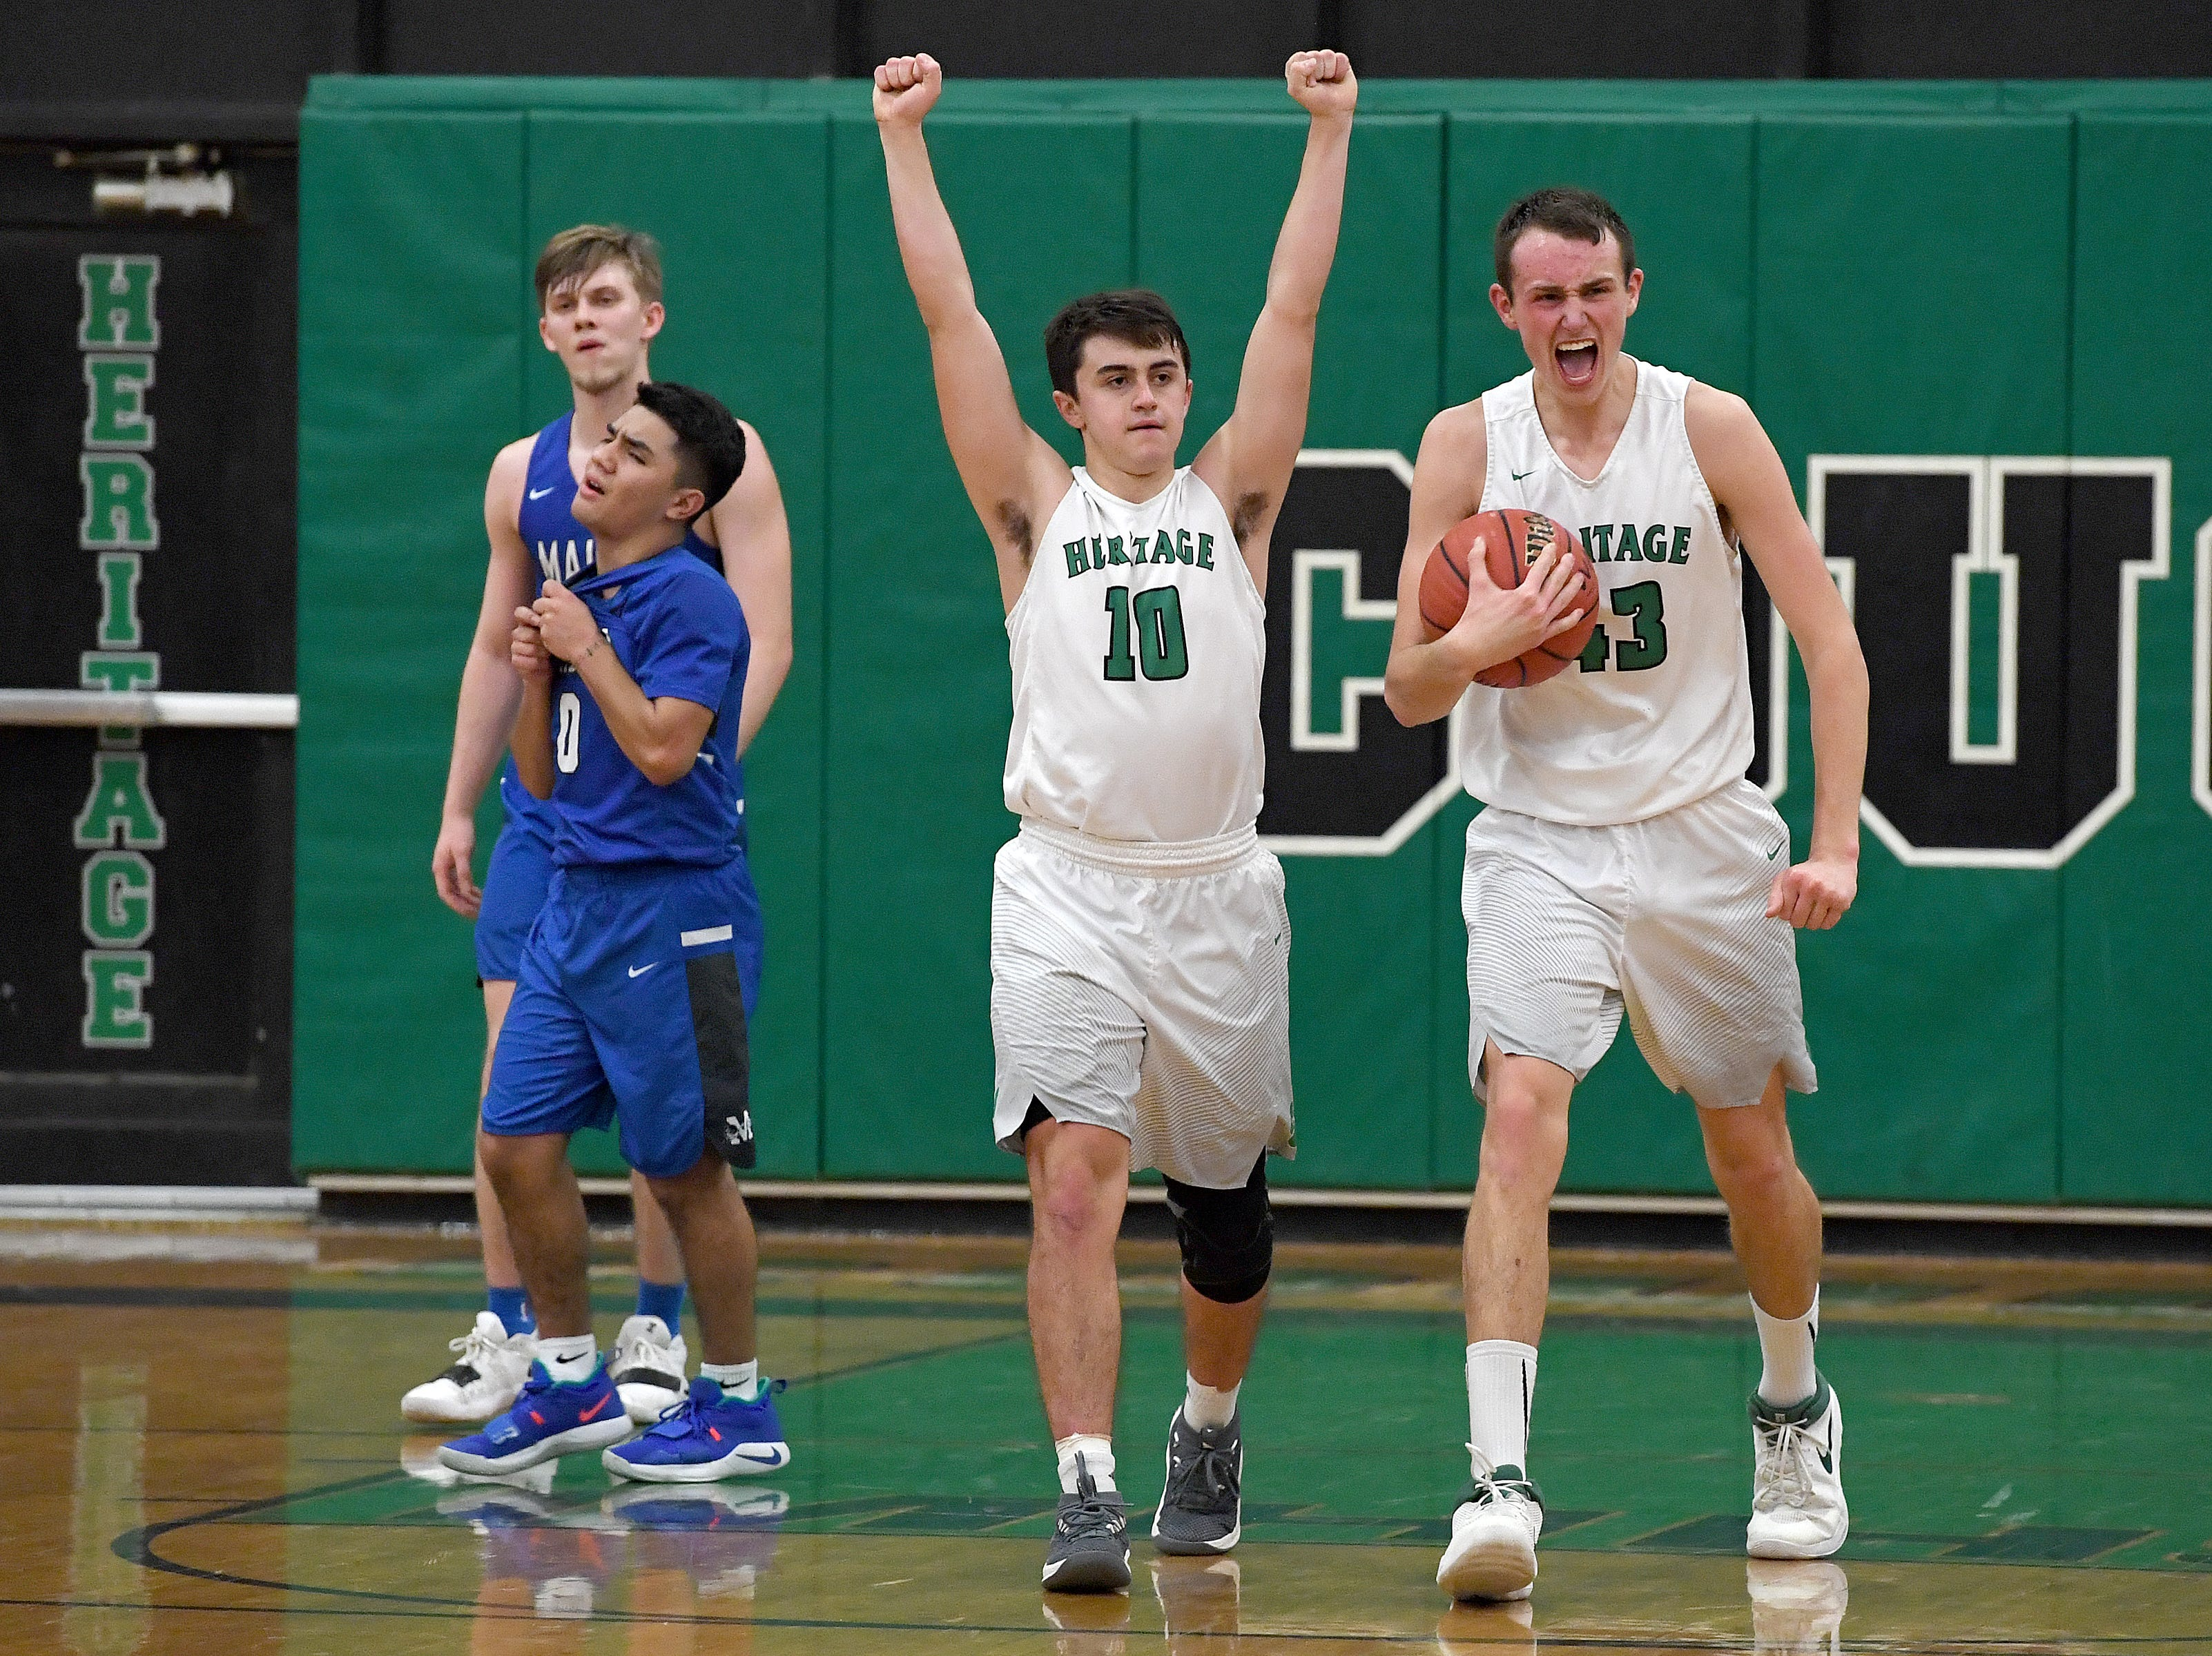 Mountain Heritage's Callin Randolph, left, and Justus Shelton, right, celebrate a call against Maiden during the final seconds of overtime during their playoff game at Mountain Heritage High School on Feb. 28, 2019. The Cougars won 74-69 in overtime to advance to the next round.